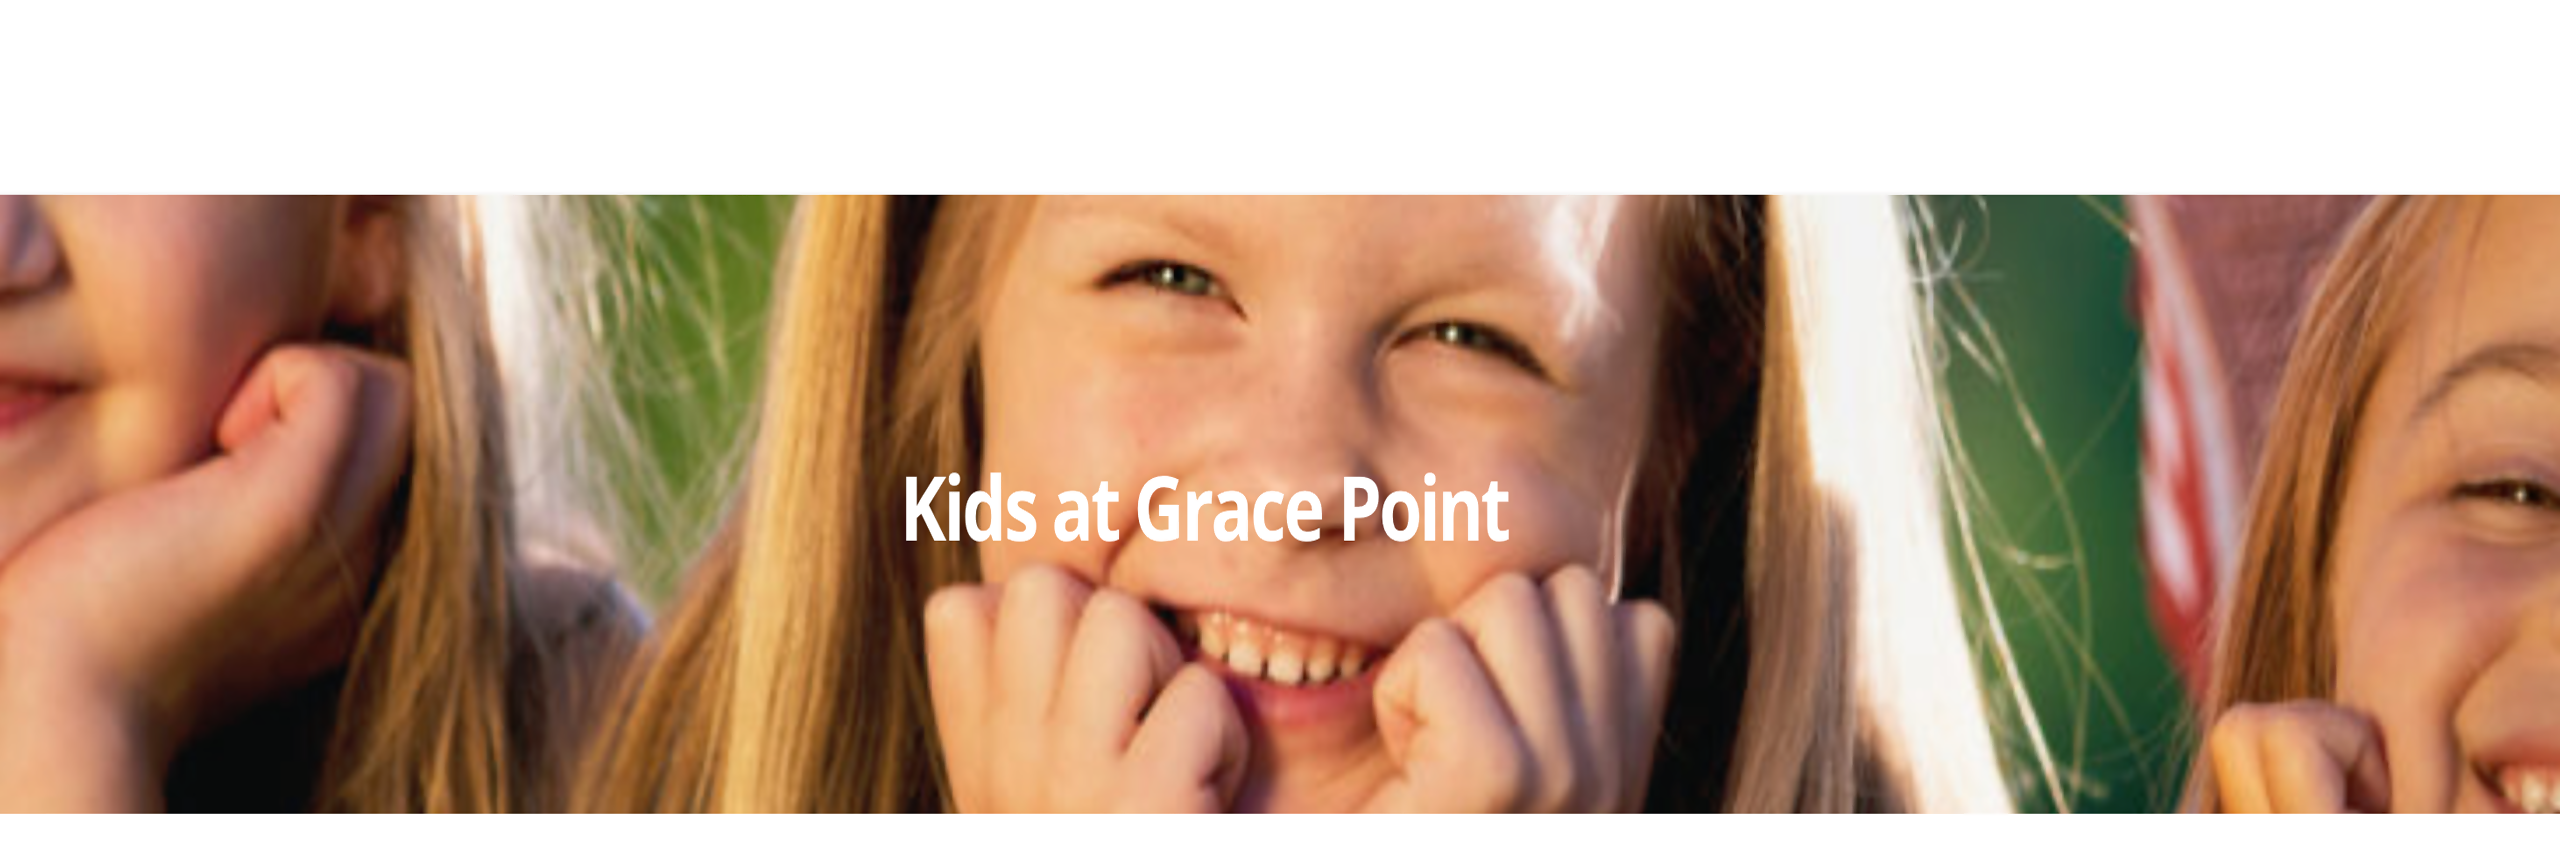 Kids at Grace Point